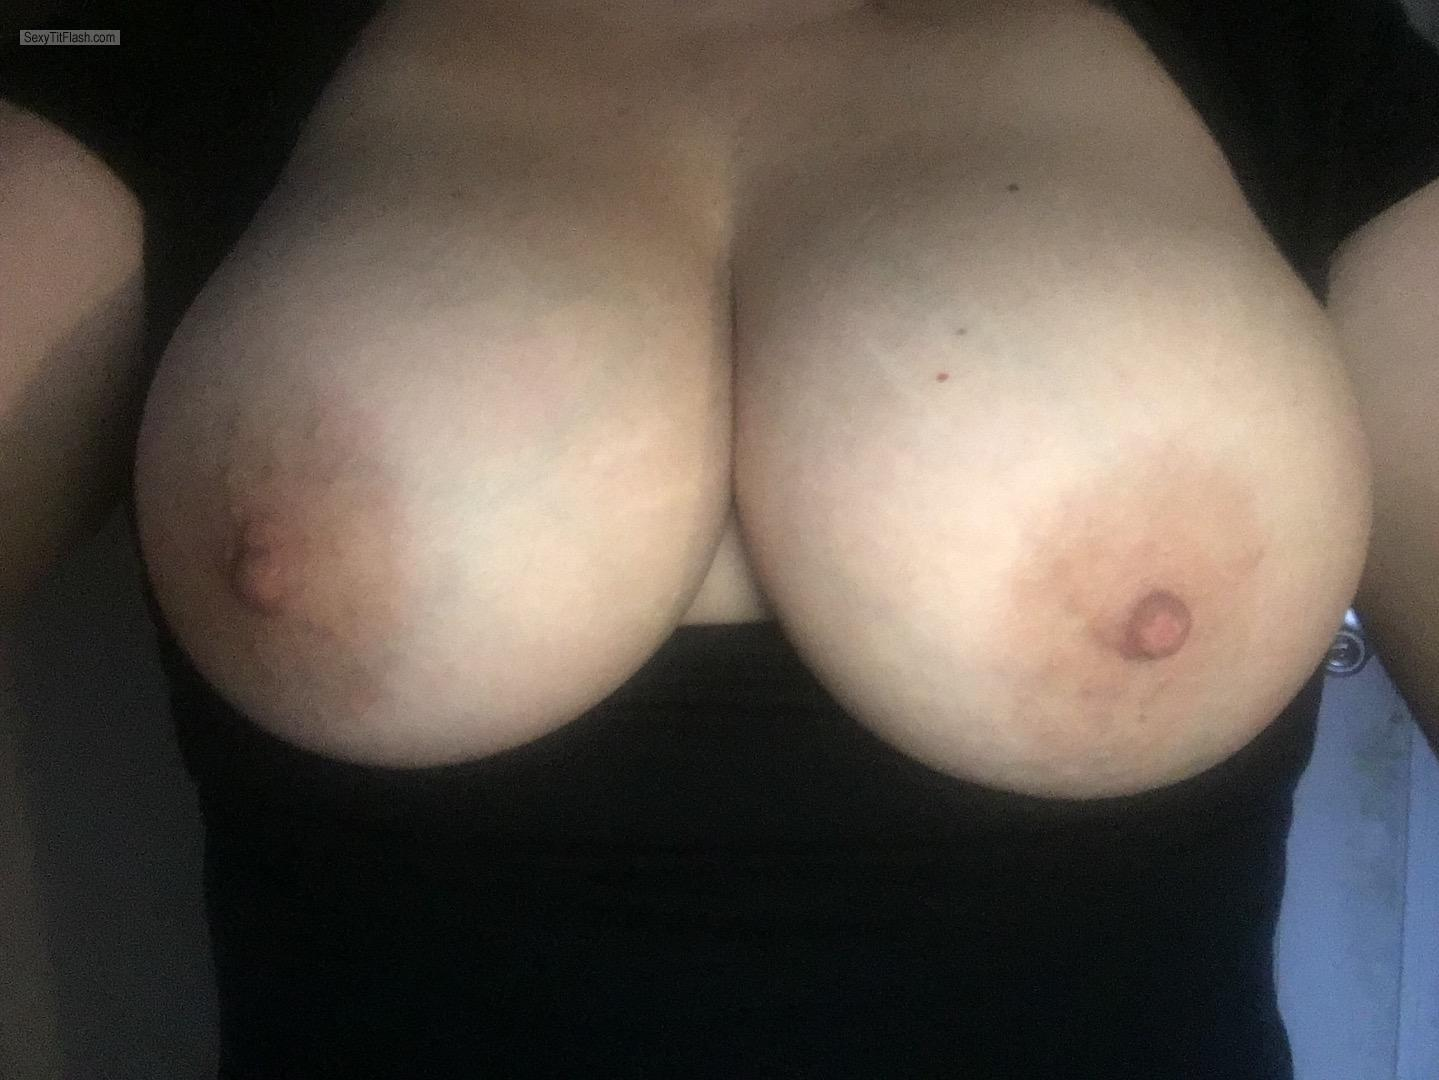 Tit Flash: My Big Tits - Topless Shan from United States